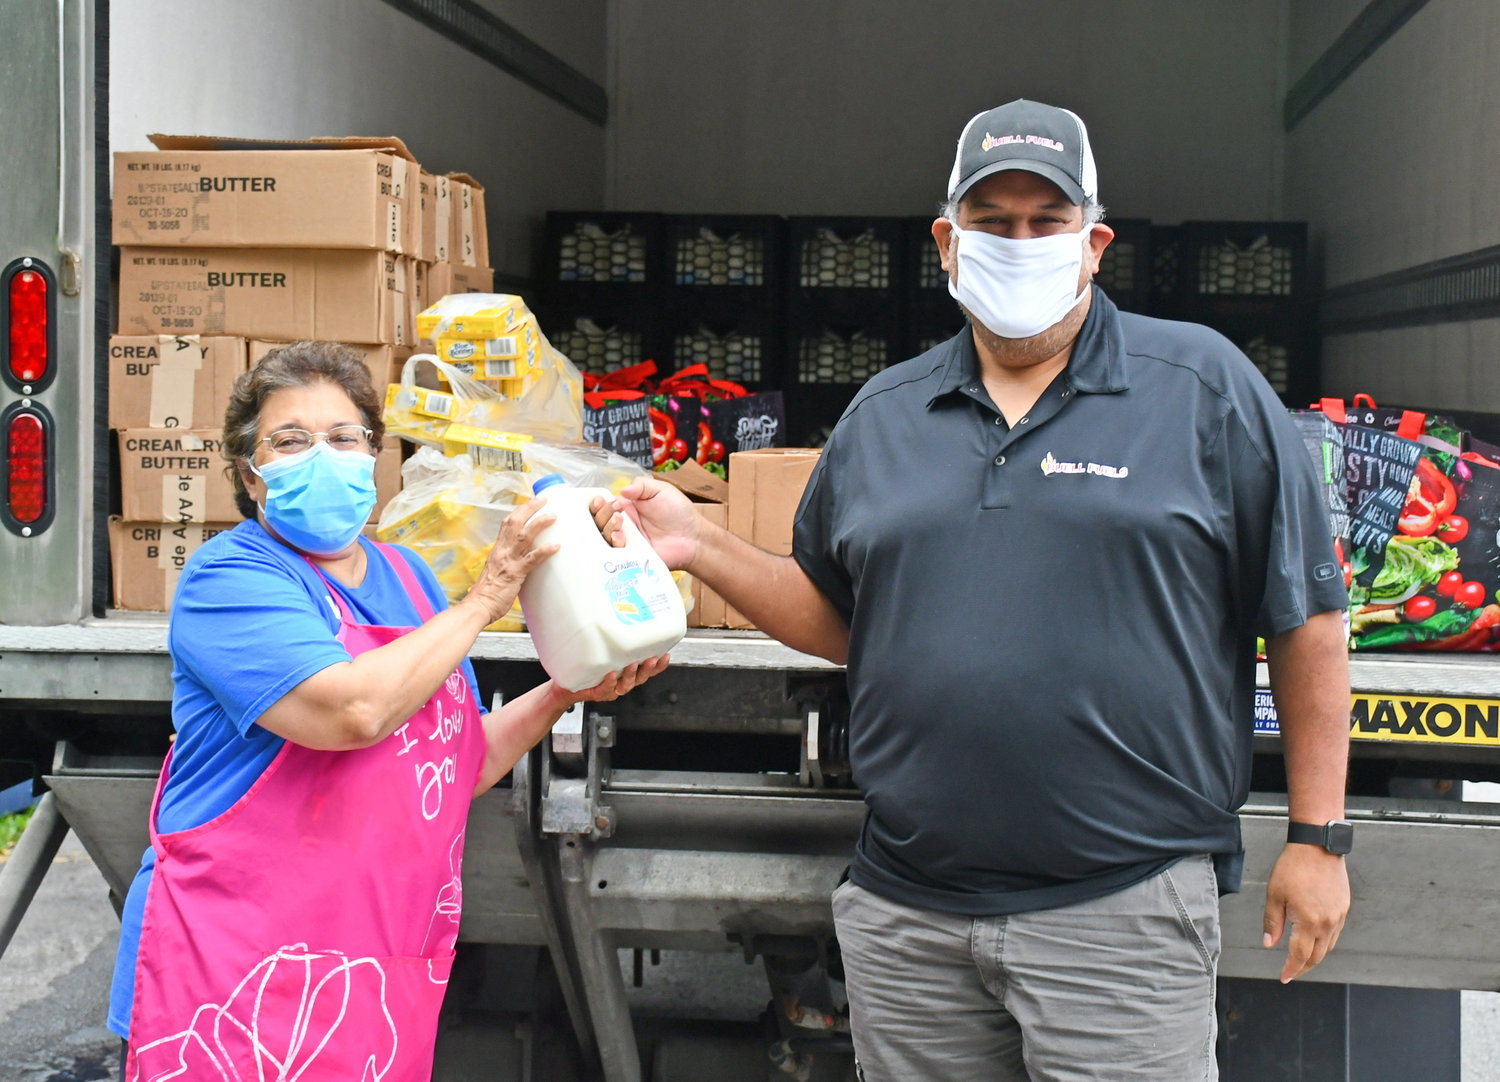 NOW THEY'VE GOT MILK — Buell Fuels Marketing Representative, Javier Lopez, right,  hands a gallon of milk to Country Pantry lead organizer Mary Zimbler at a food distribution event earlier this month. Another 299 gallons of milk, also donated to the Clark Mills pantry, is ready to be distributed to local families in need on the refrigerated truck behind them. This is the second such donation Buell Fuels has made to the The Country Pantry since May in an effort to aid both the hungry in the Clinton-Clark Mills-Westmoreland area and local dairy farmers who have been impacted by the ongoing COVID-19 pandemic.